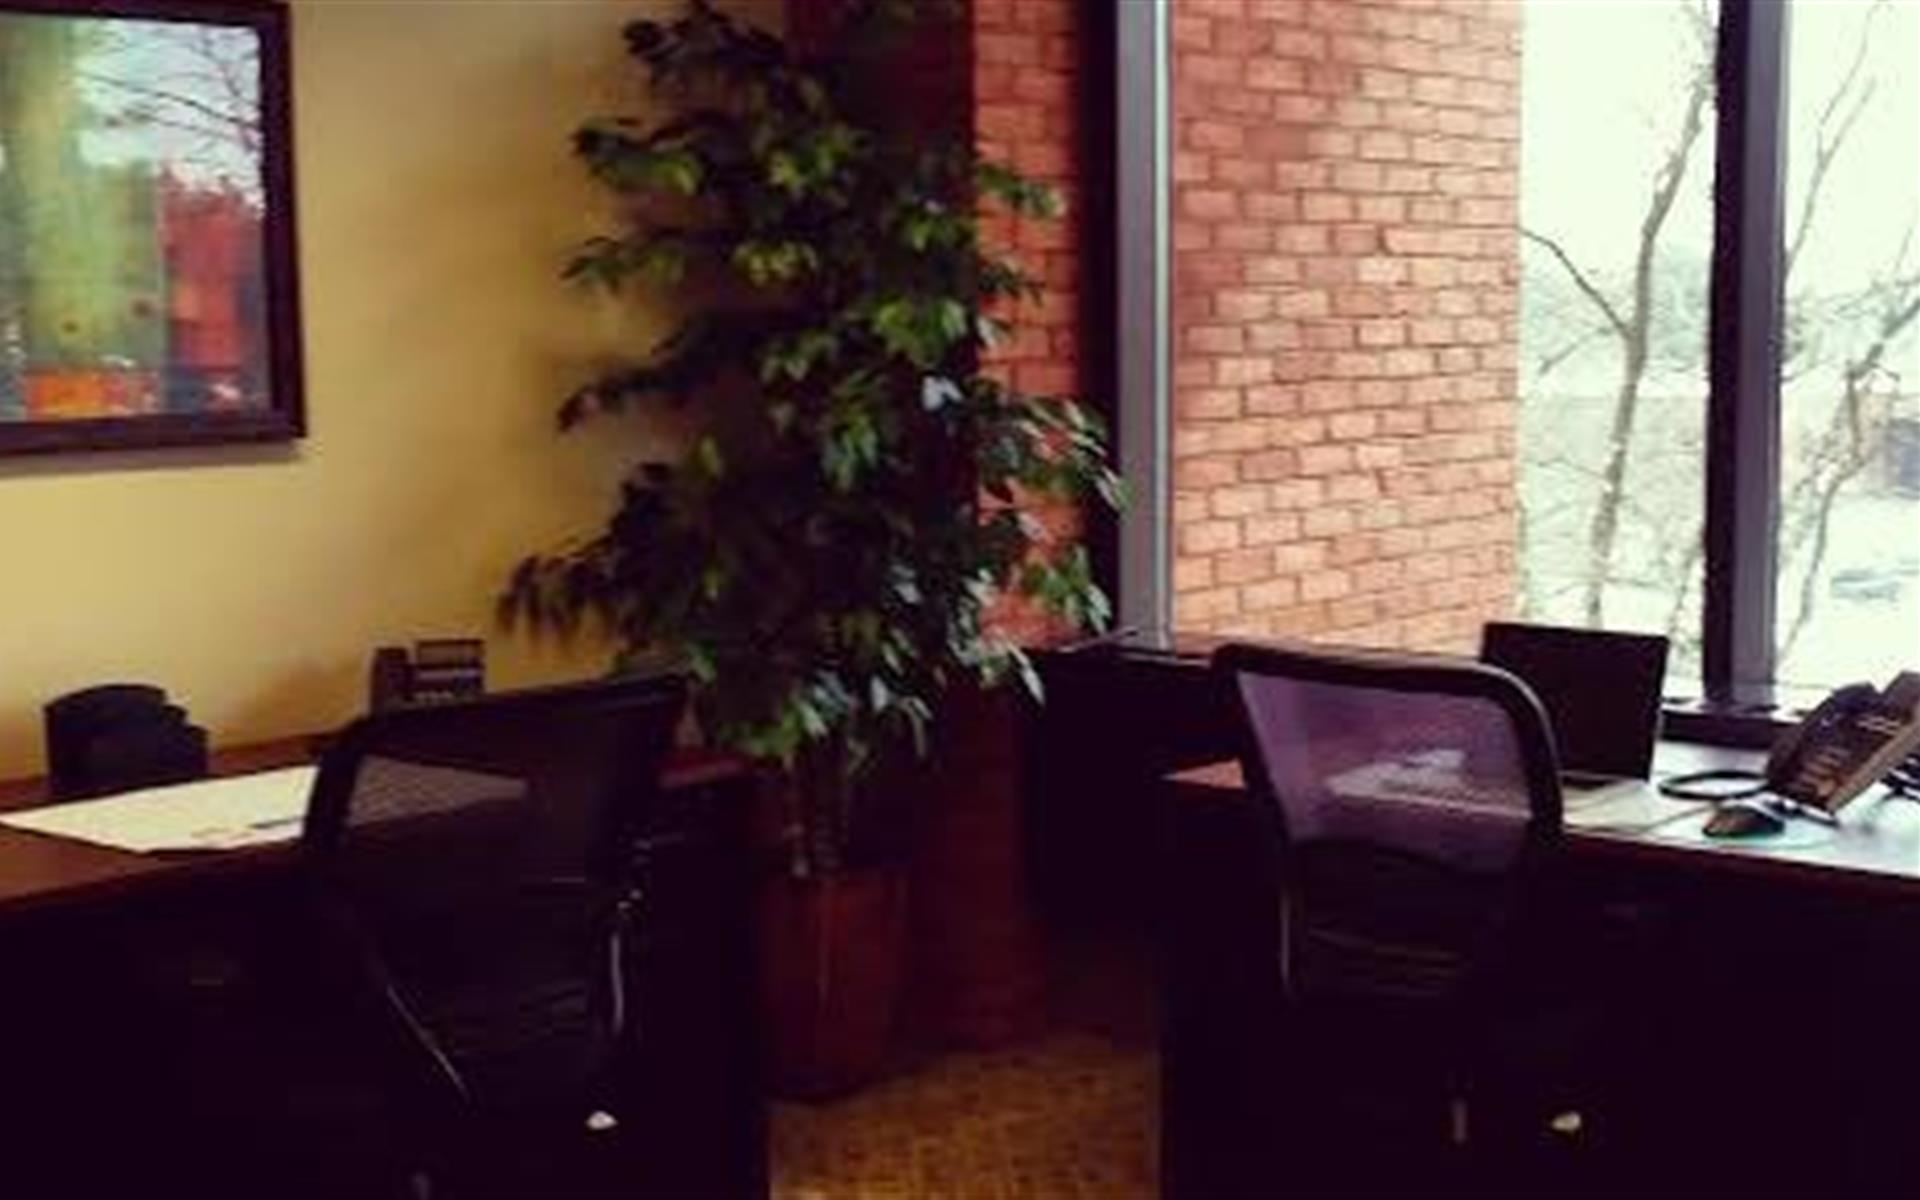 Highland-March Workspaces, Mansfield - Private Office for 2